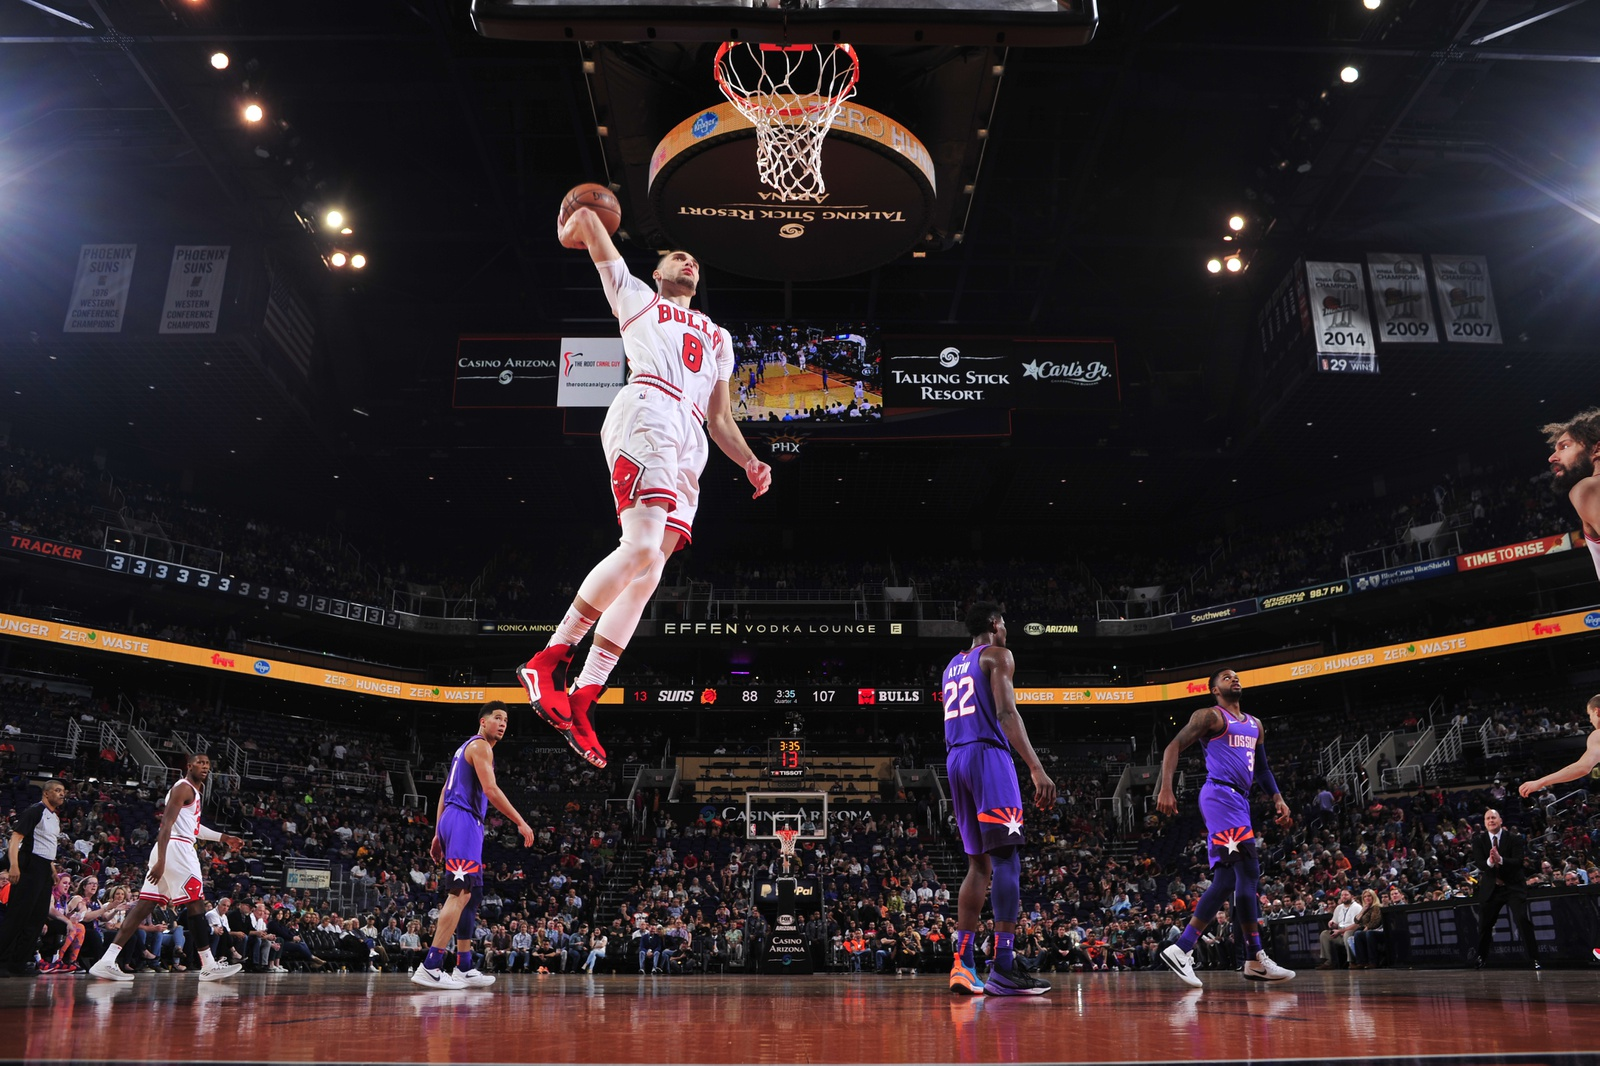 Zach LaVine #8 of the Chicago Bulls dunks the ball against the Phoenix Suns on March 18, 2019 at Talking Stick Resort Arena in Phoenix, Arizona